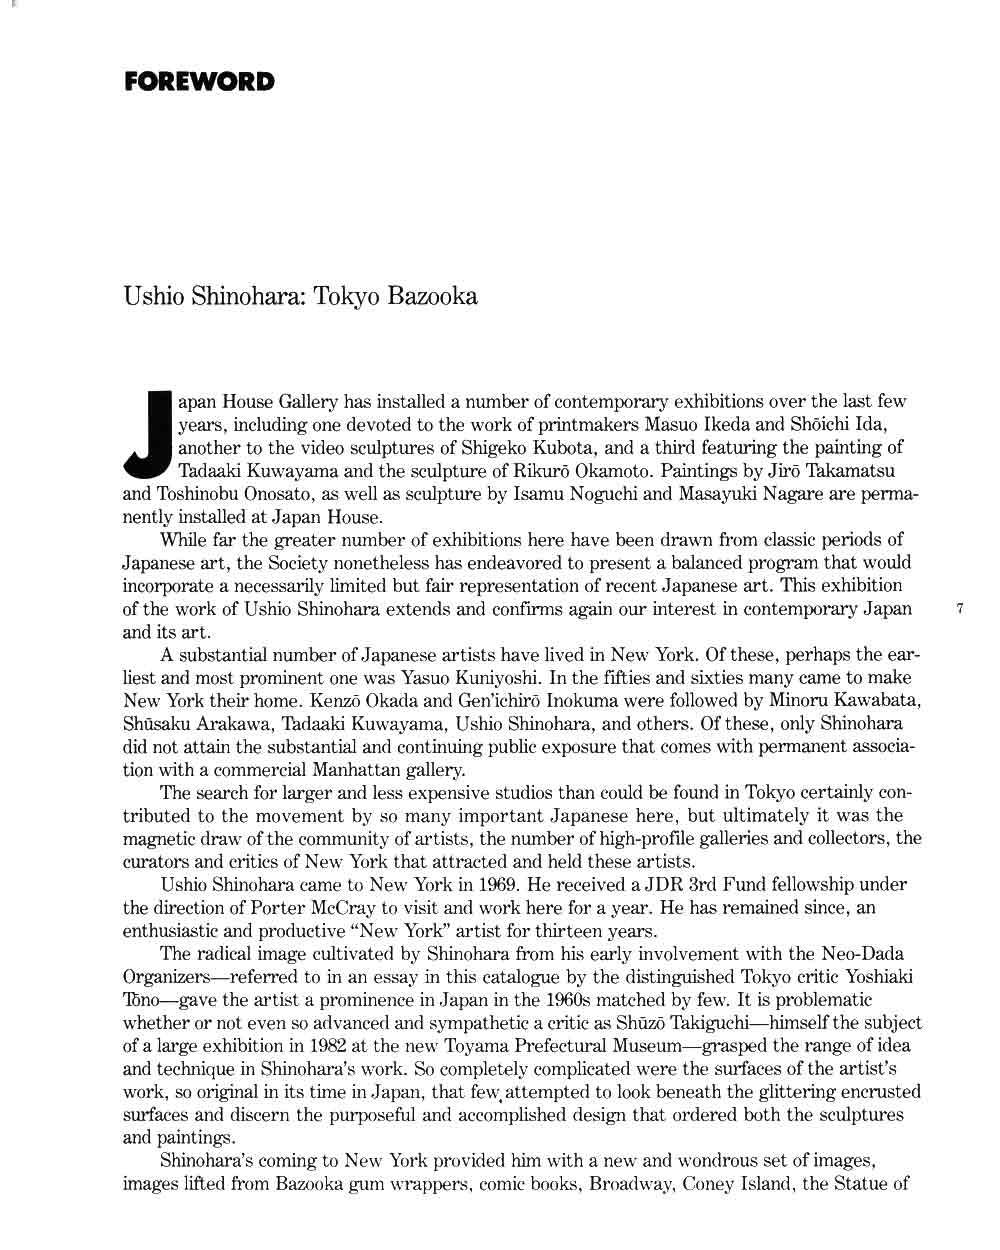 003 How To Cite Work In An Essay Example Ushio Shinohara Tokyo Bazooka Pg 1 Stupendous Nber Working Paper Mla A Web Source Full